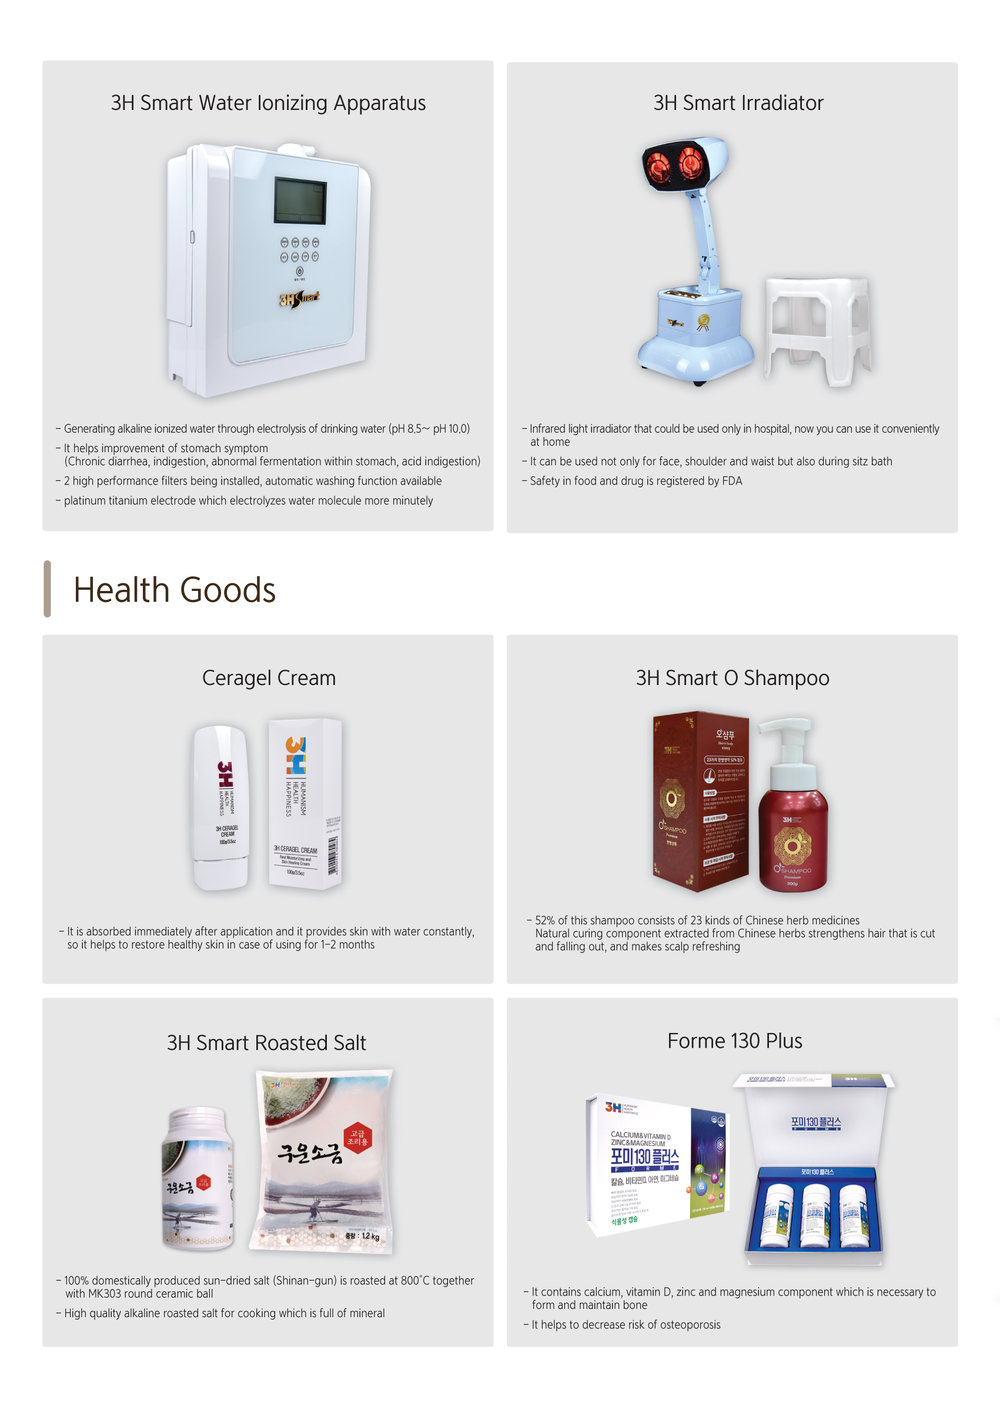 Beauty & Nutrition - Here is a description of products.